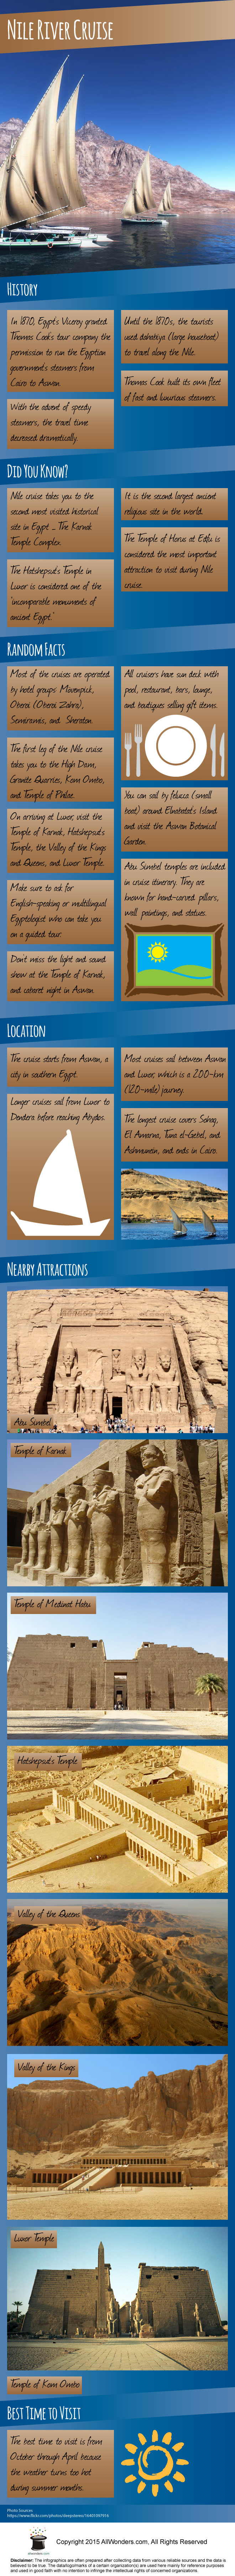 Nile River Cruise Infographic